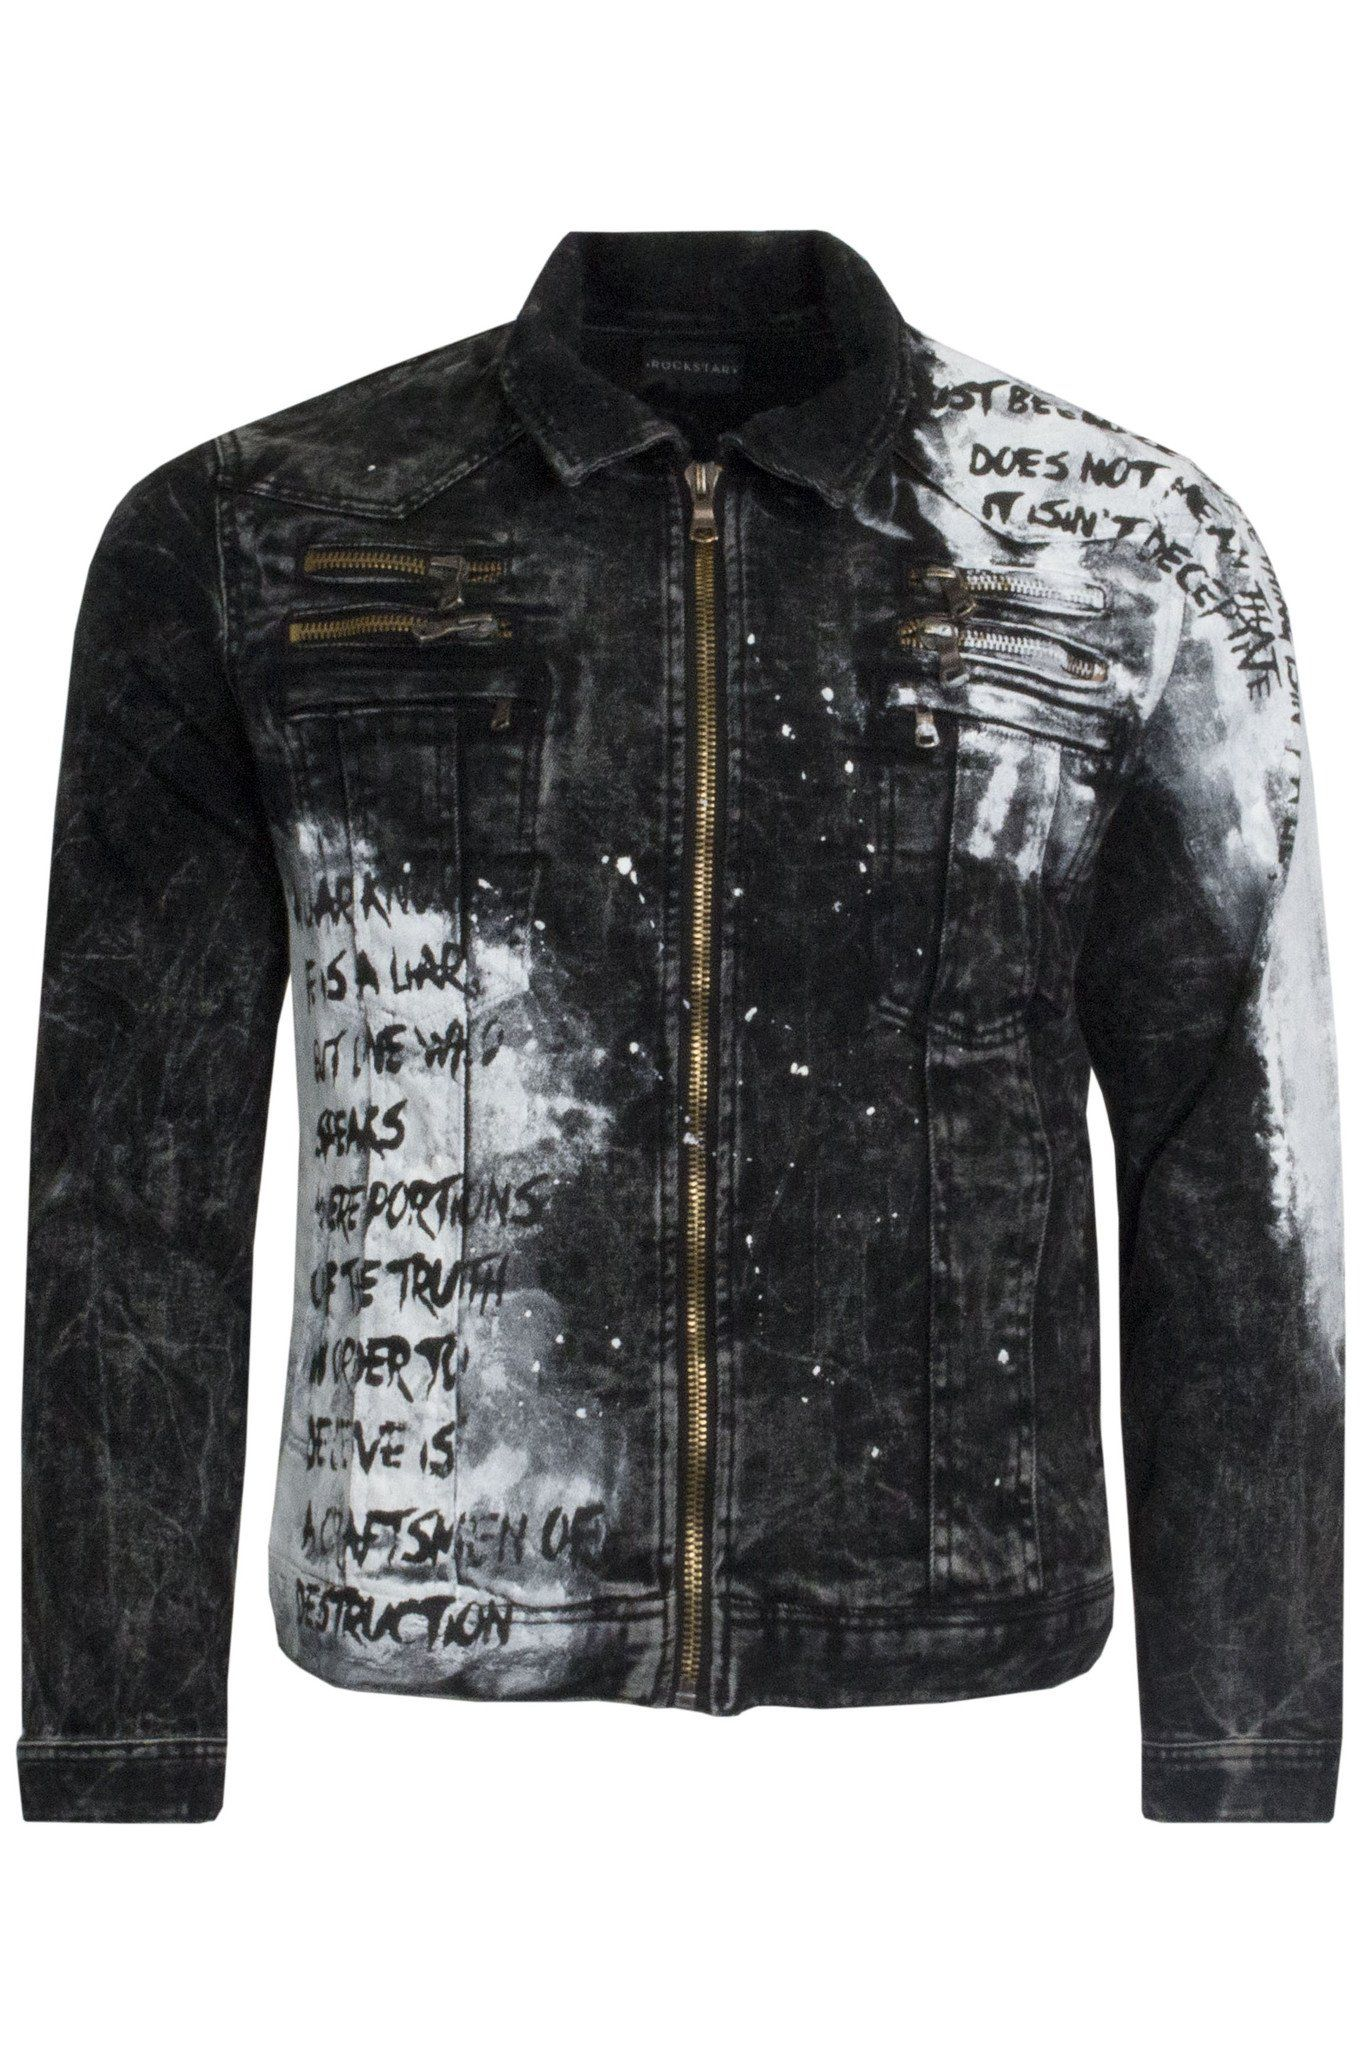 737c20fbc4b3 Rockstar Brooklyn Acid Black Denim Jacket